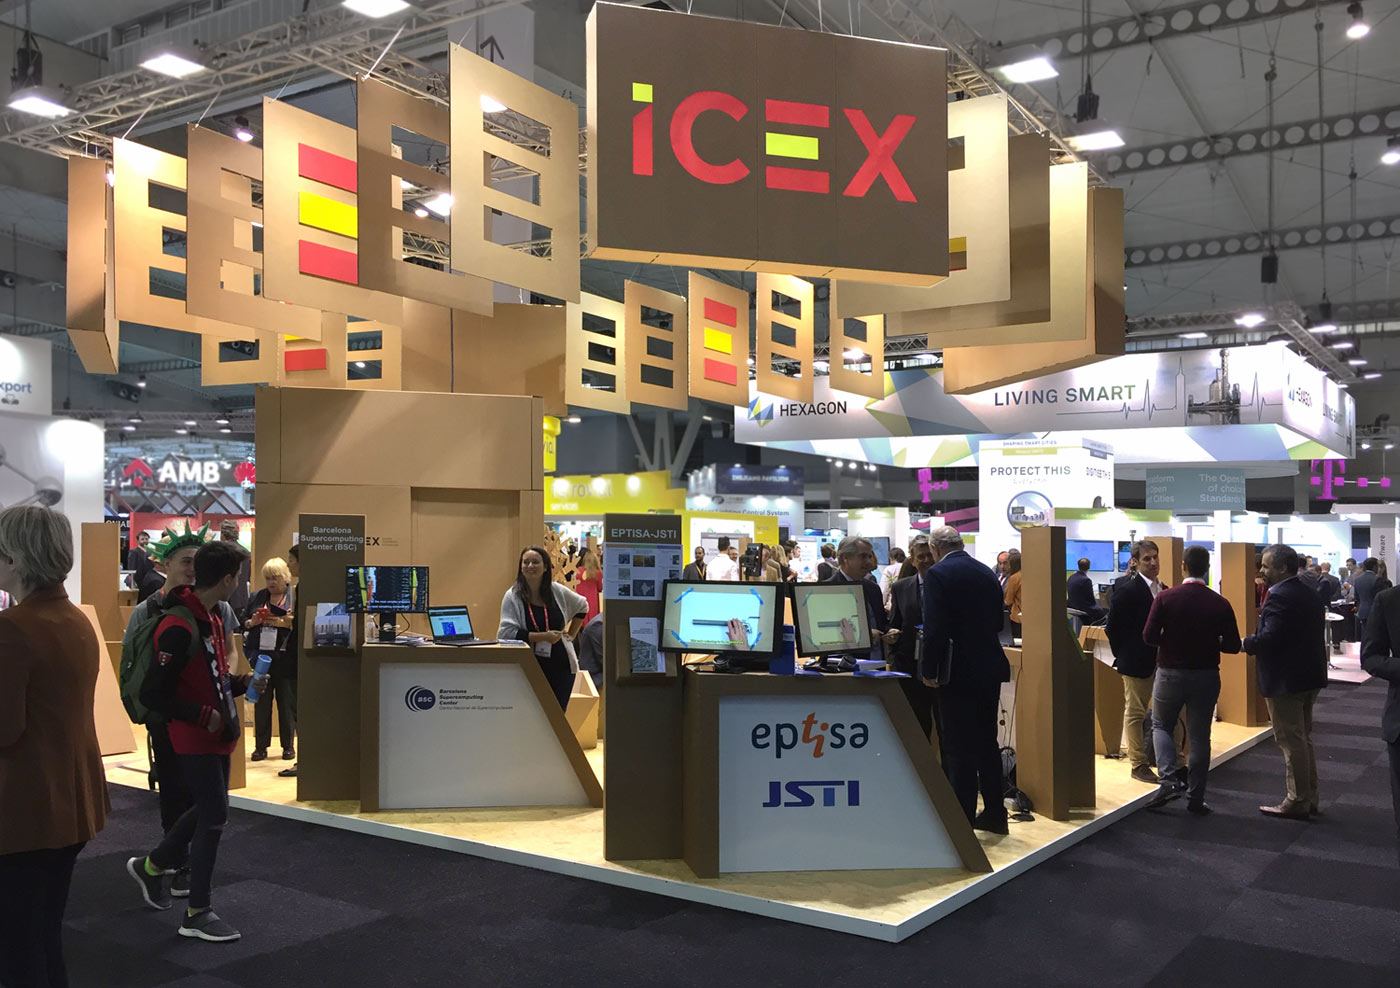 Smart cities world expo icex stand